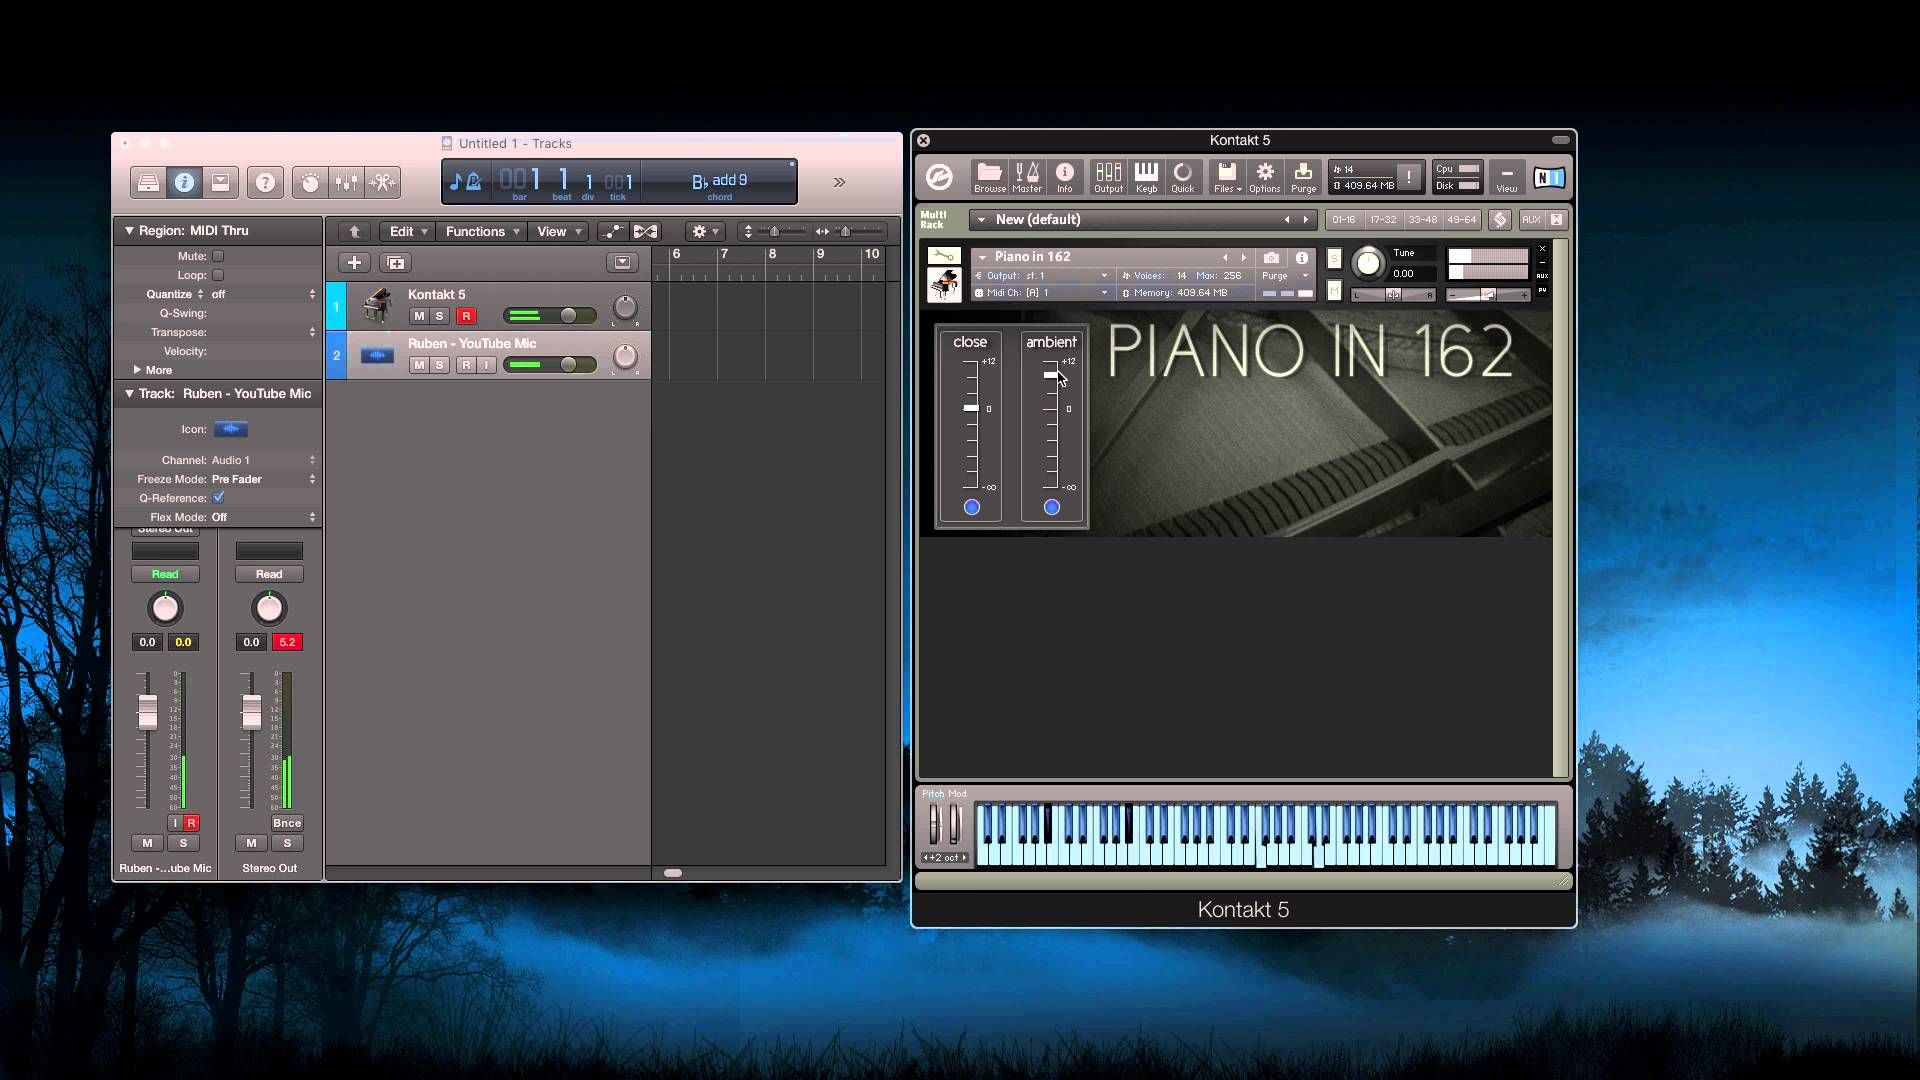 Friends, if you own the FULL version of Kontakt, I highly